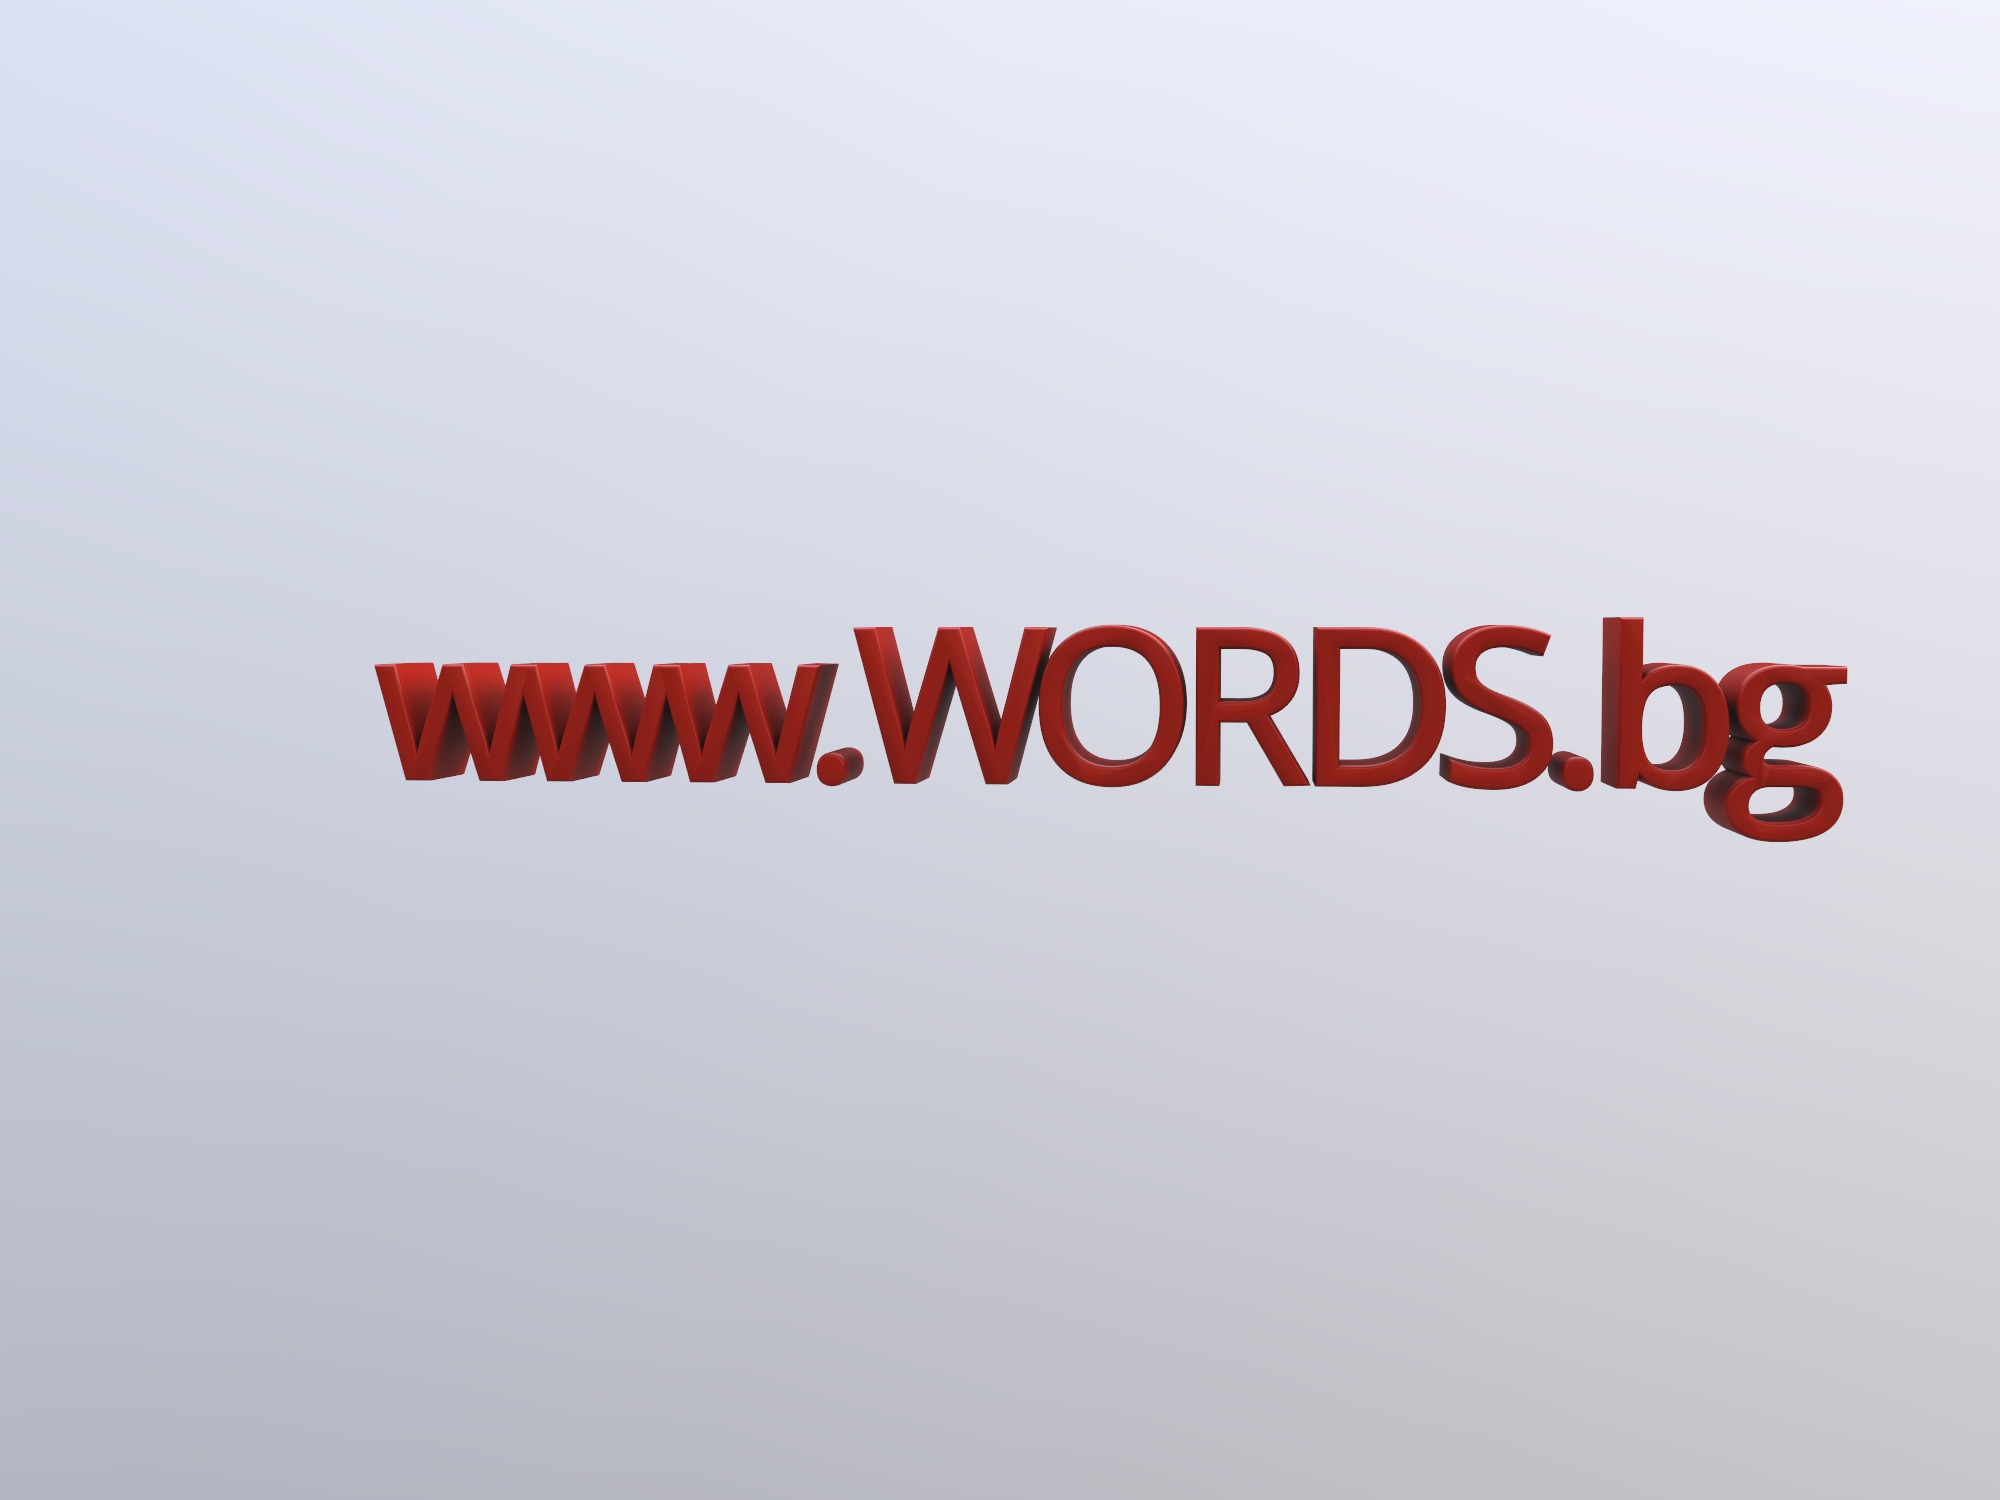 WORDS.bg - 3D design by greghristov Oct 17, 2018